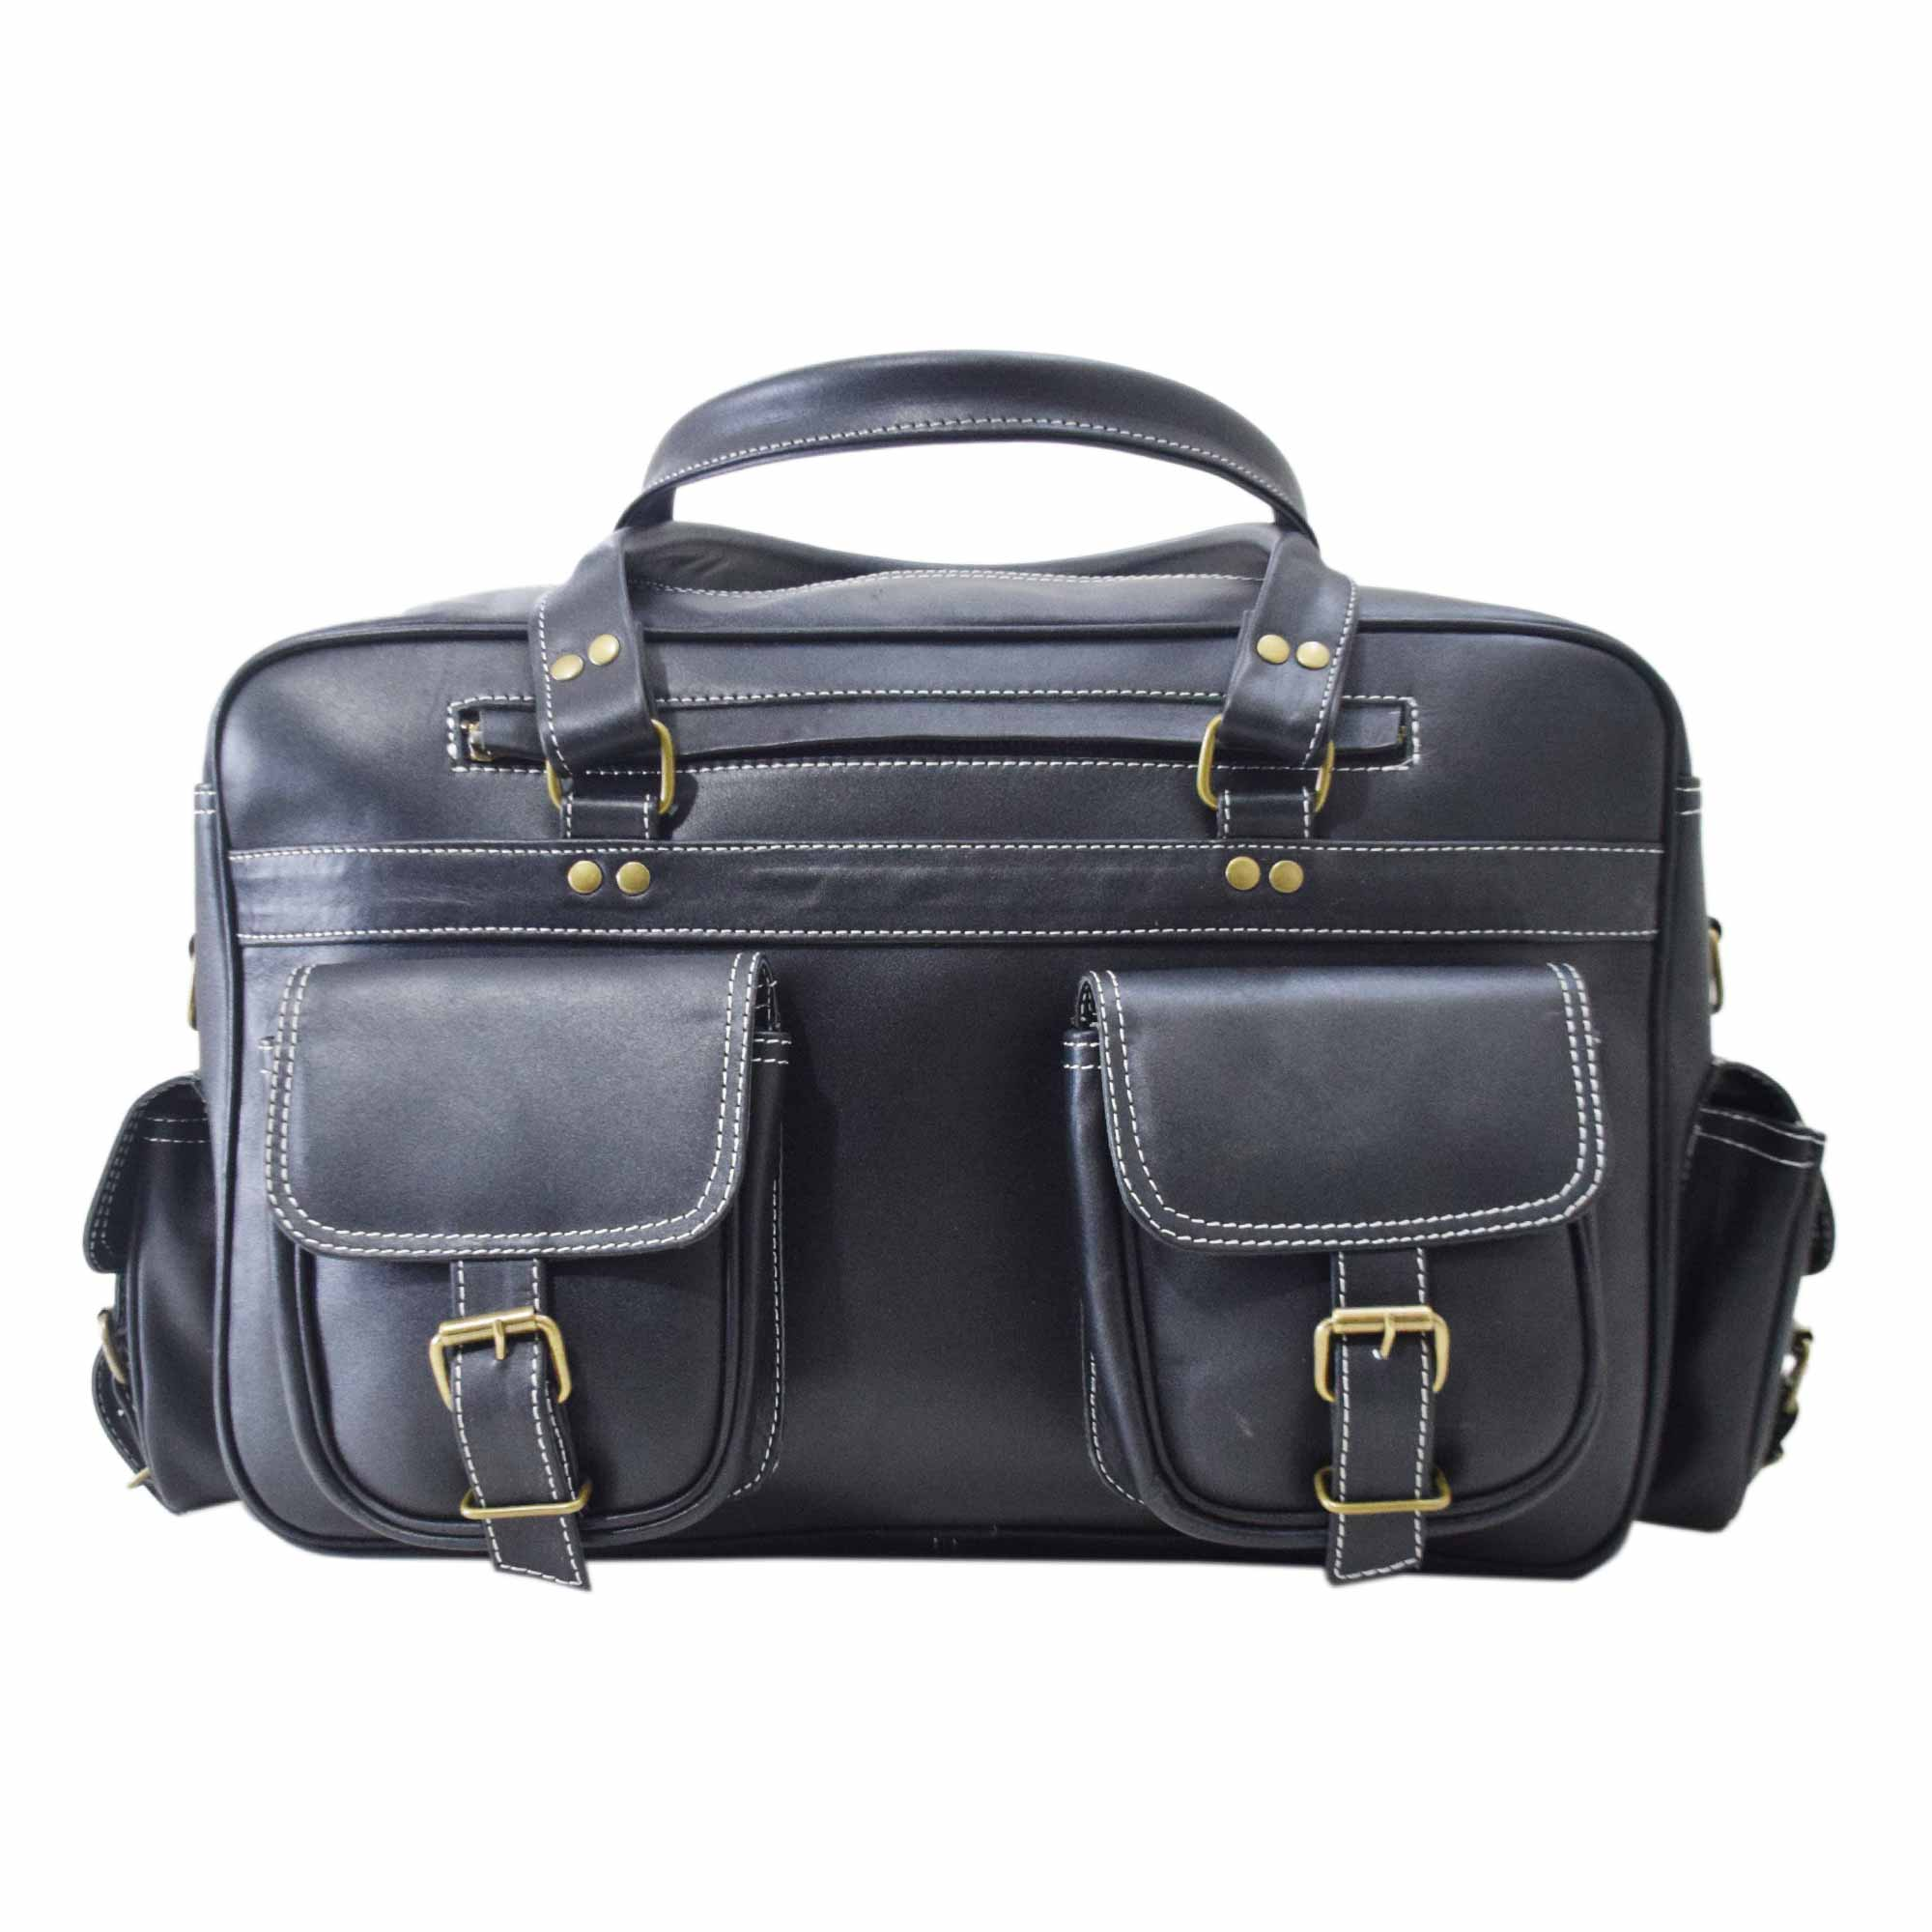 NAVY BLUE BIG LAPTOP / MESSENGER BAG FOR 15